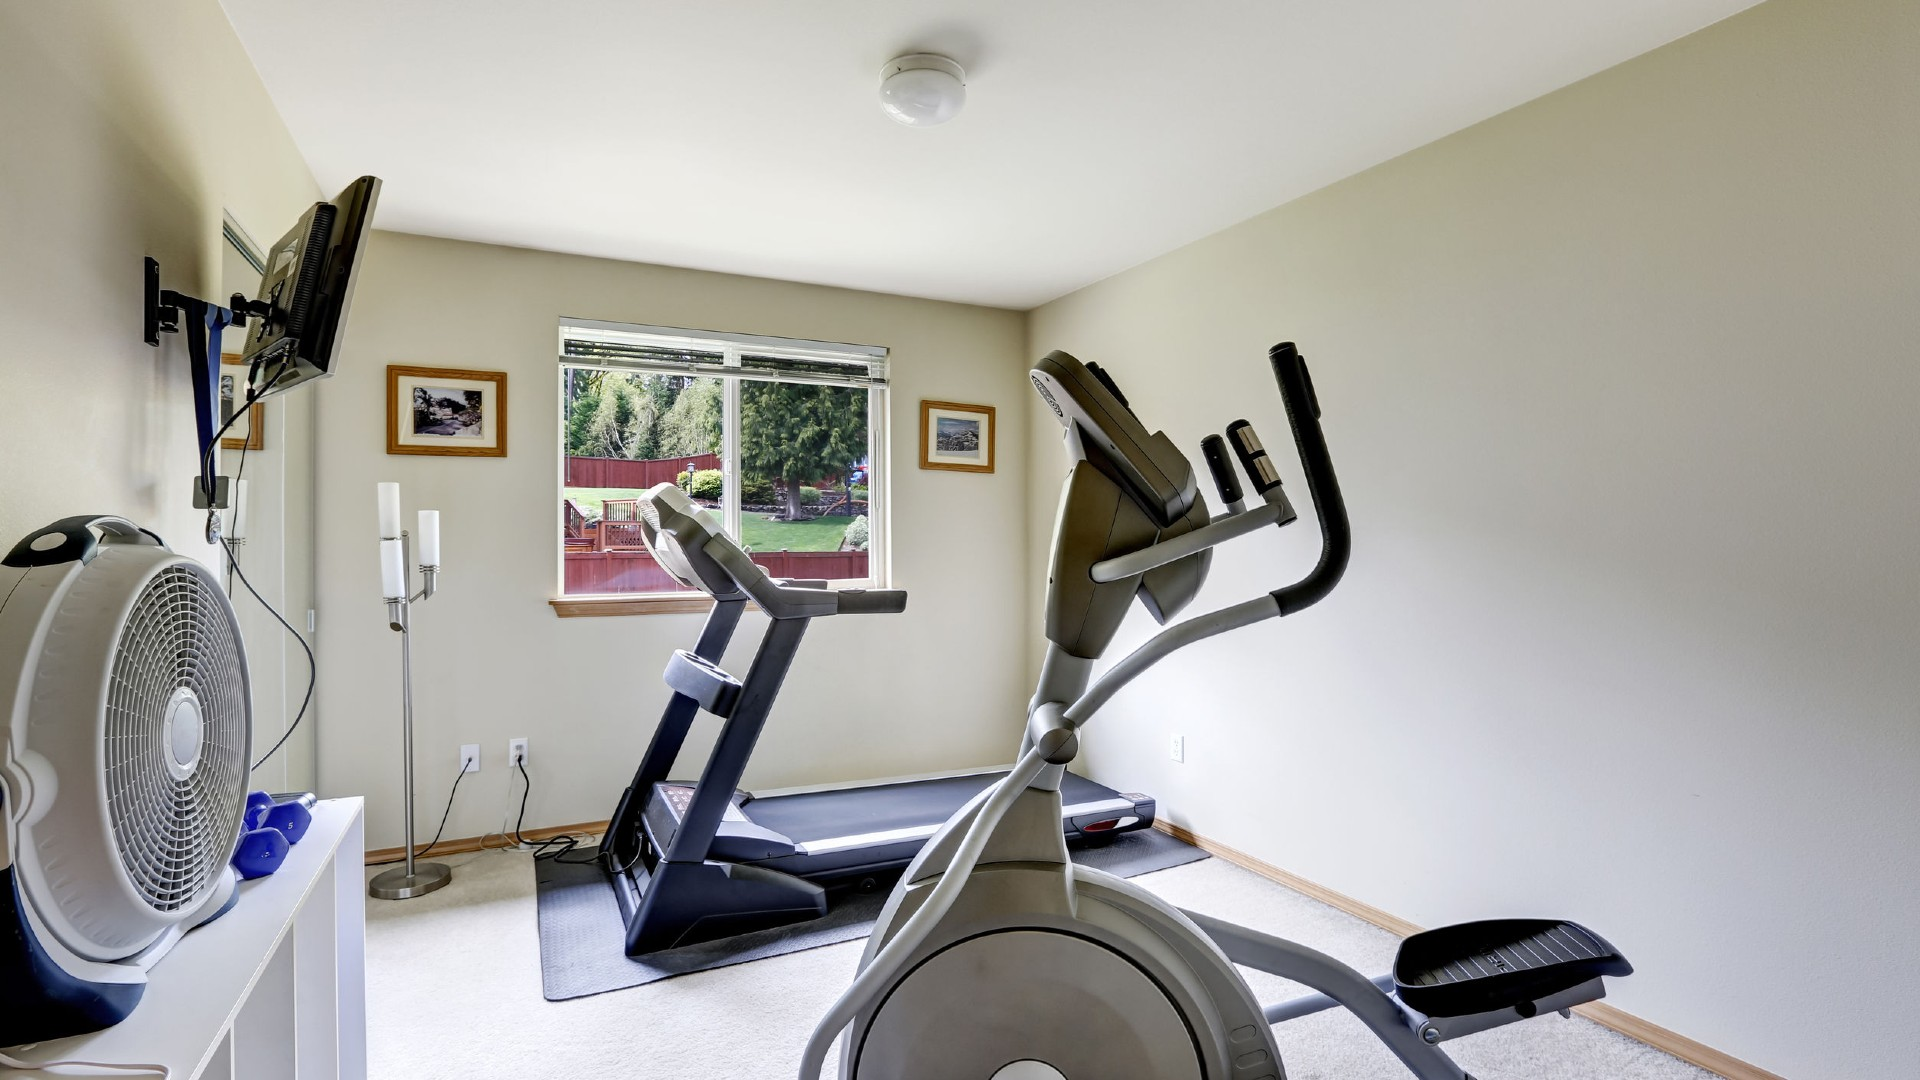 Buying A Home Gym For Your New BTO: 5 Things To Look Out For